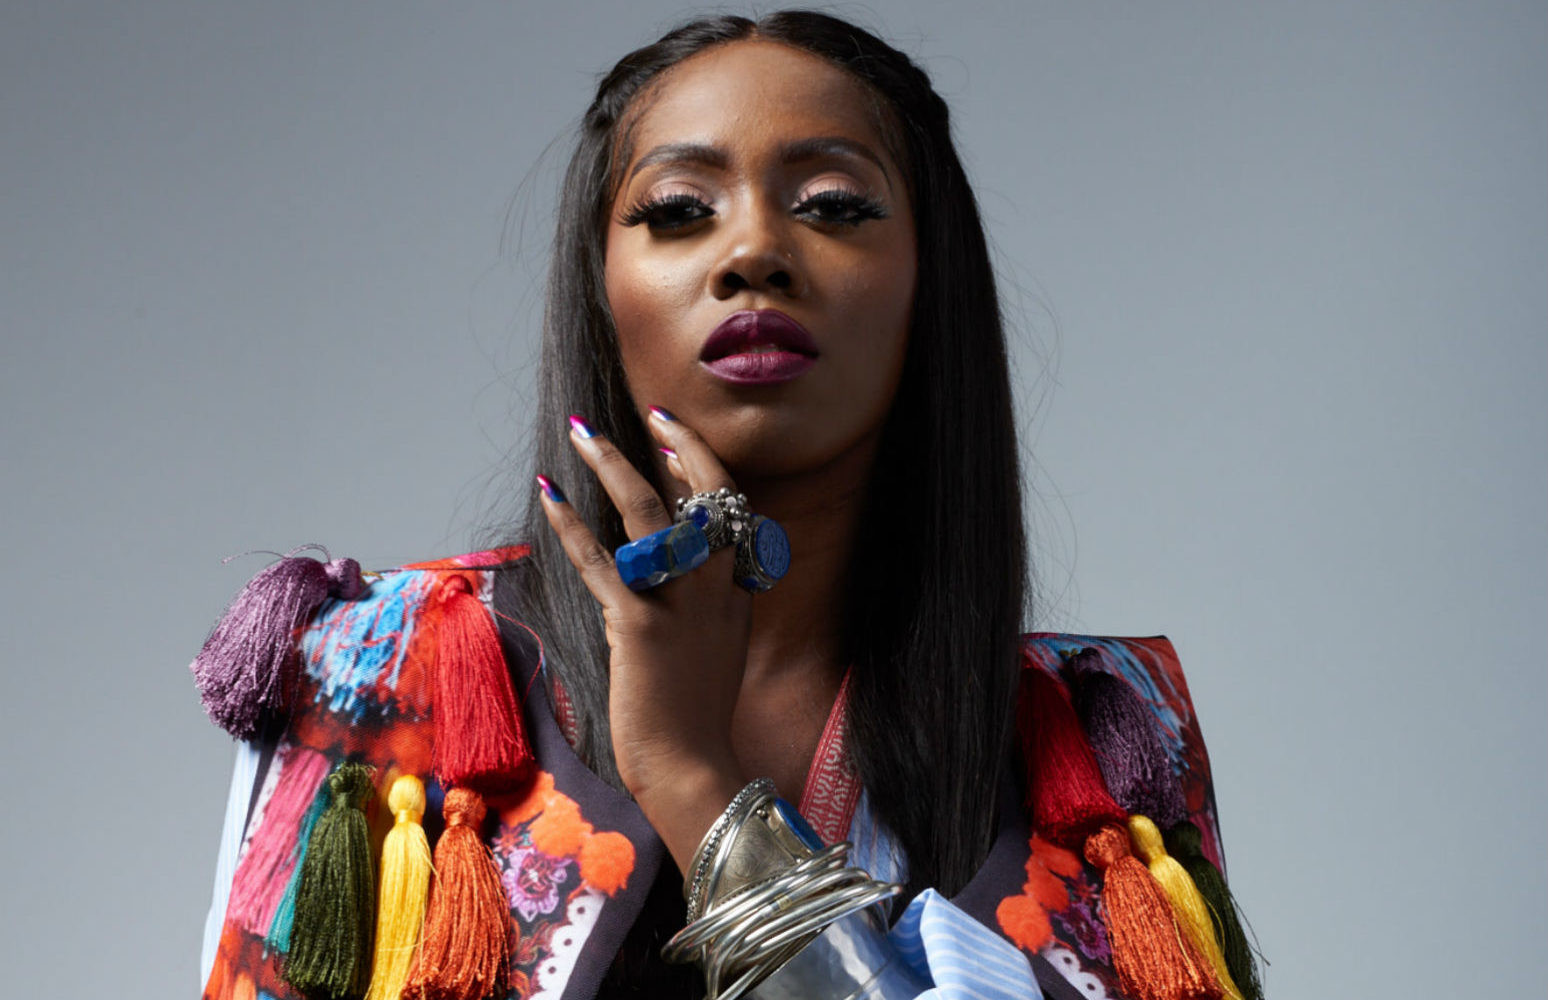 I'll put out my nakedness in next music video – Tiwa Savage #Arewapublisize